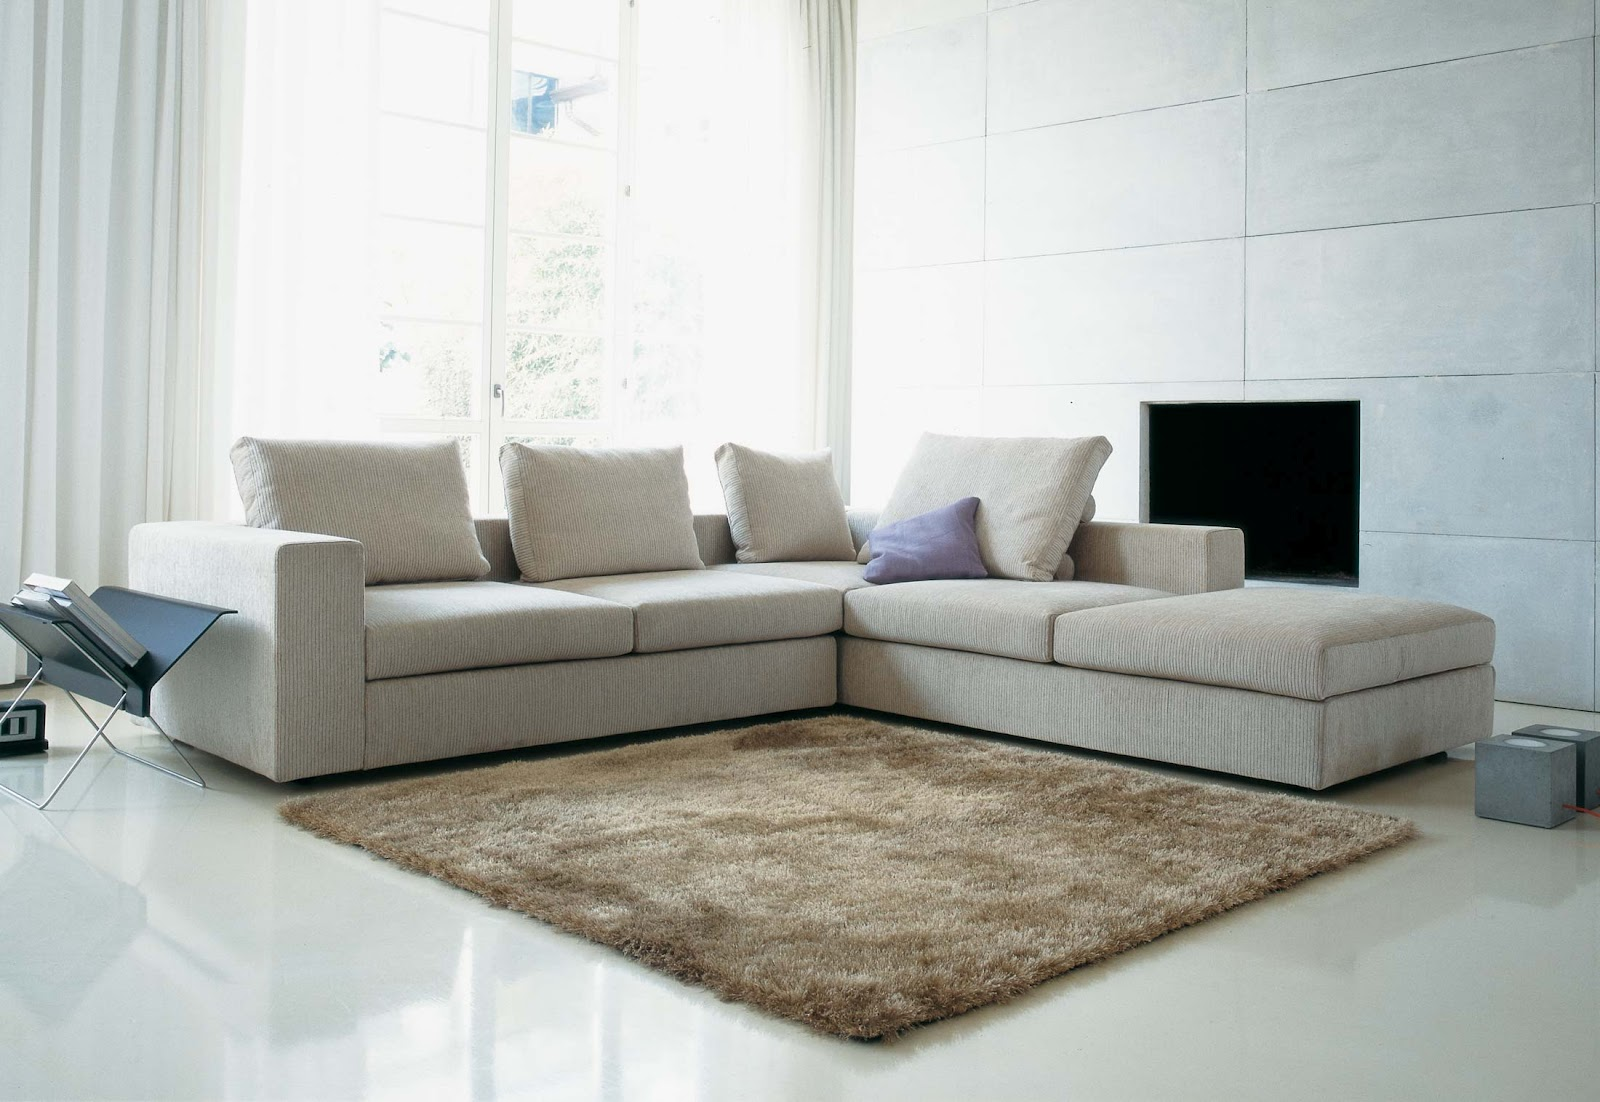 Zanotta Sofa Bed Chaise Living Room Set Beta By Designer Furniture Fitted